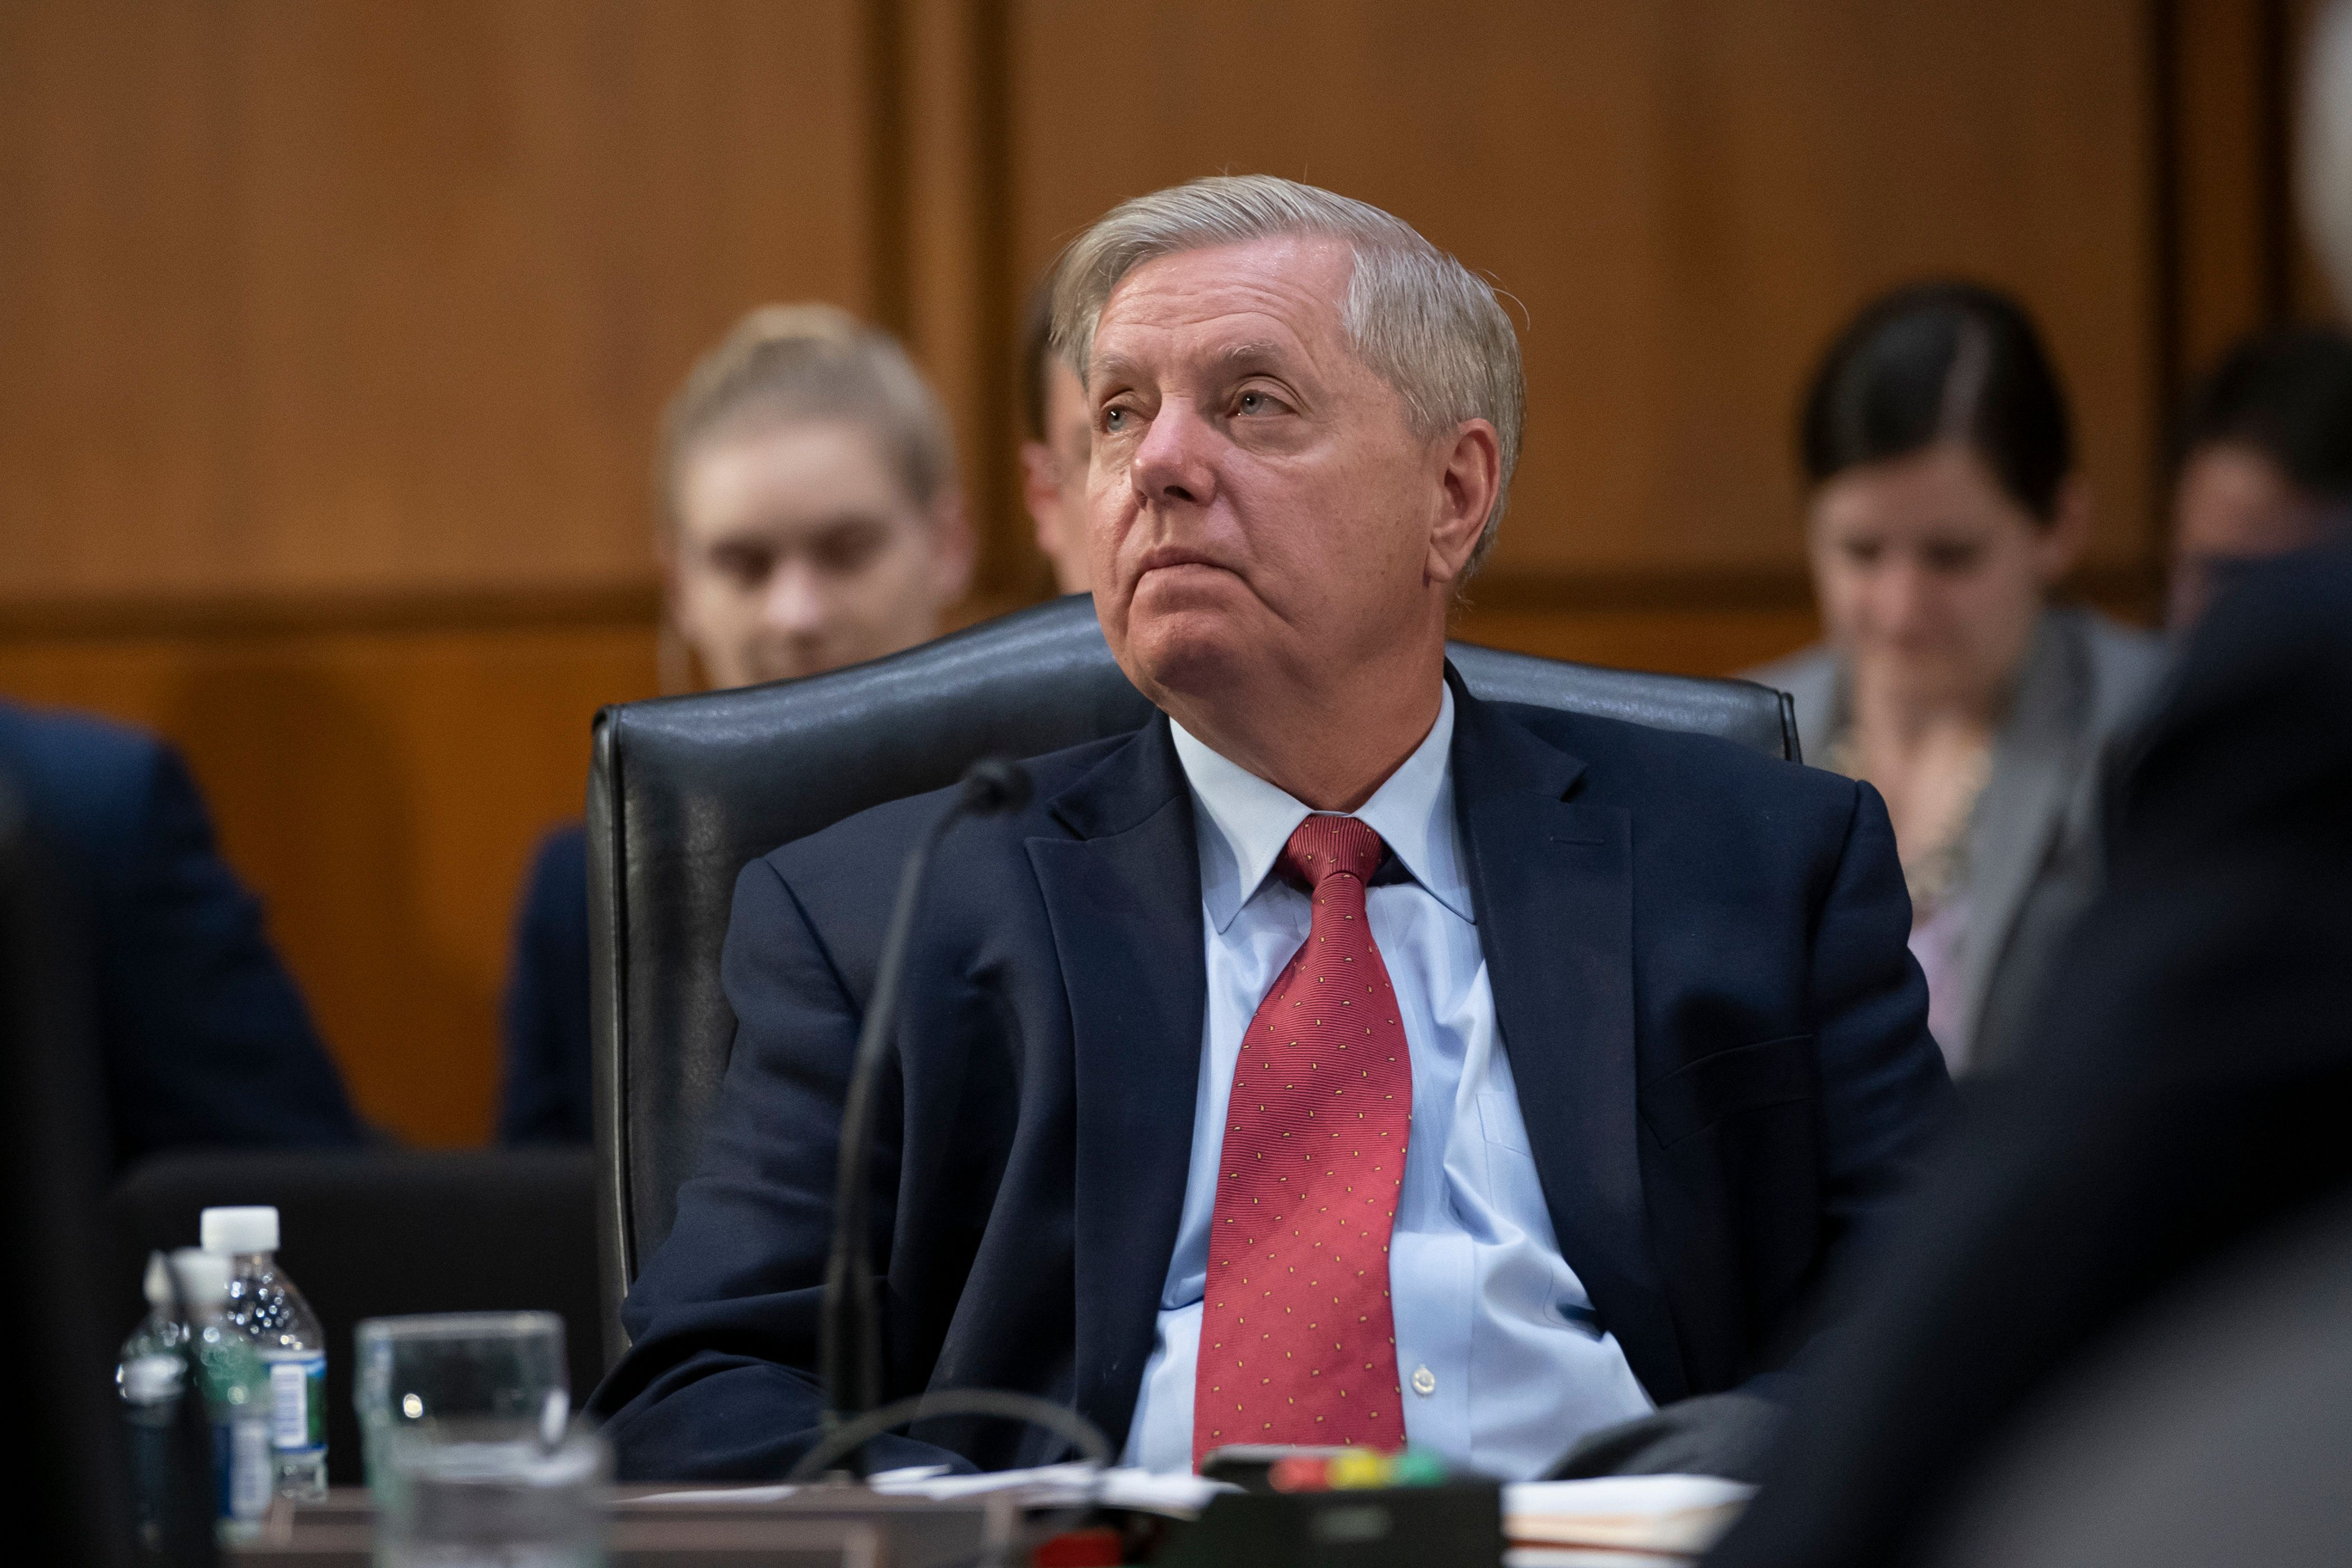 Sen. Lindsey Graham, the Senate Judiciary chairman and ally of President Donald Trump, attends a markup of the federal spending blueprint for fiscal year 2020 with other members of the Senate Budget Committee, on Capitol Hill in Washington, Thursday, March 28, 2019. (AP Photo/J. Scott Applewhite)